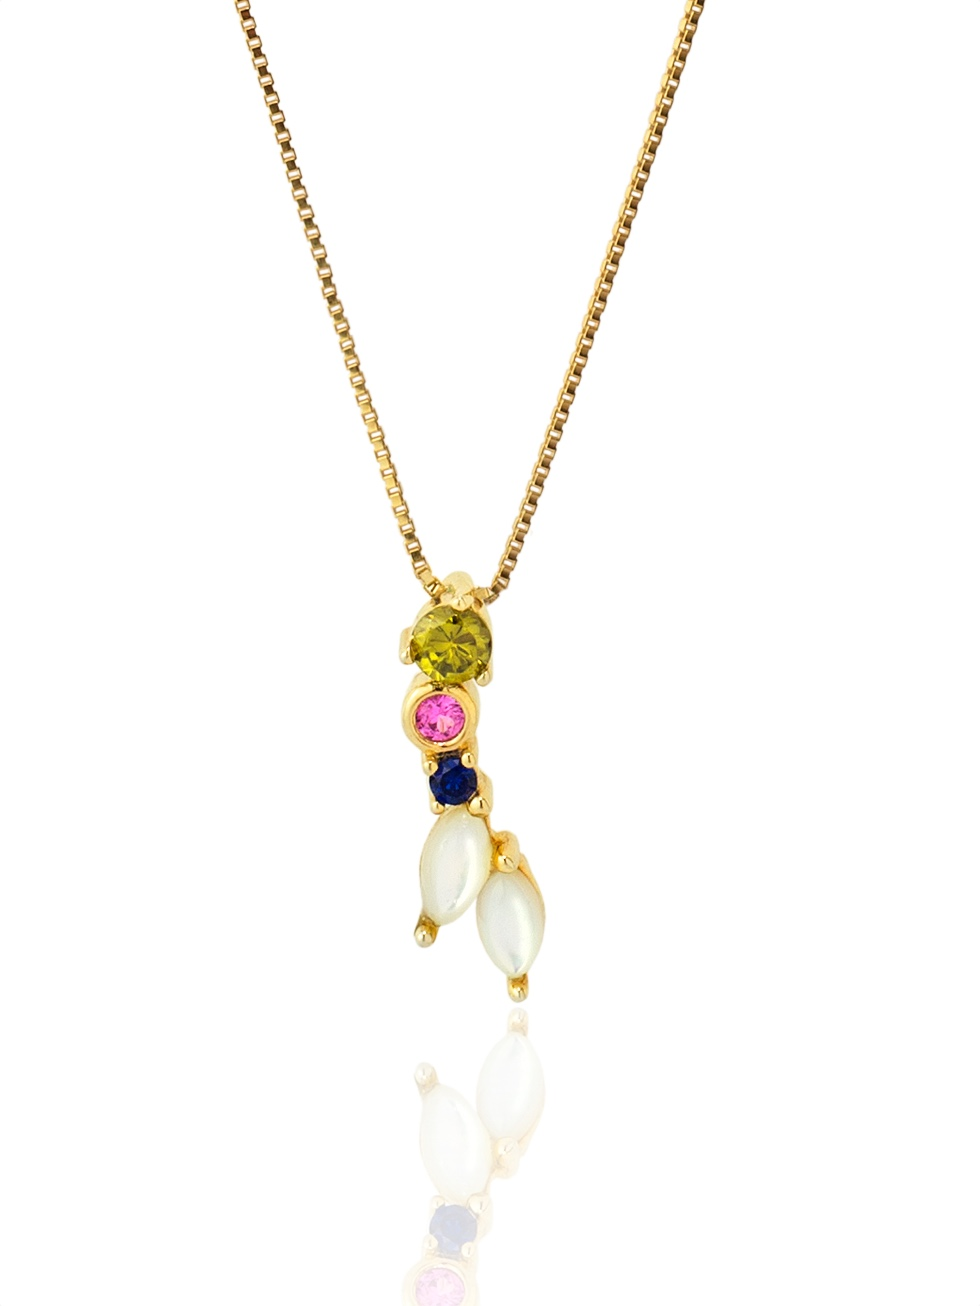 IVOLI gold necklace